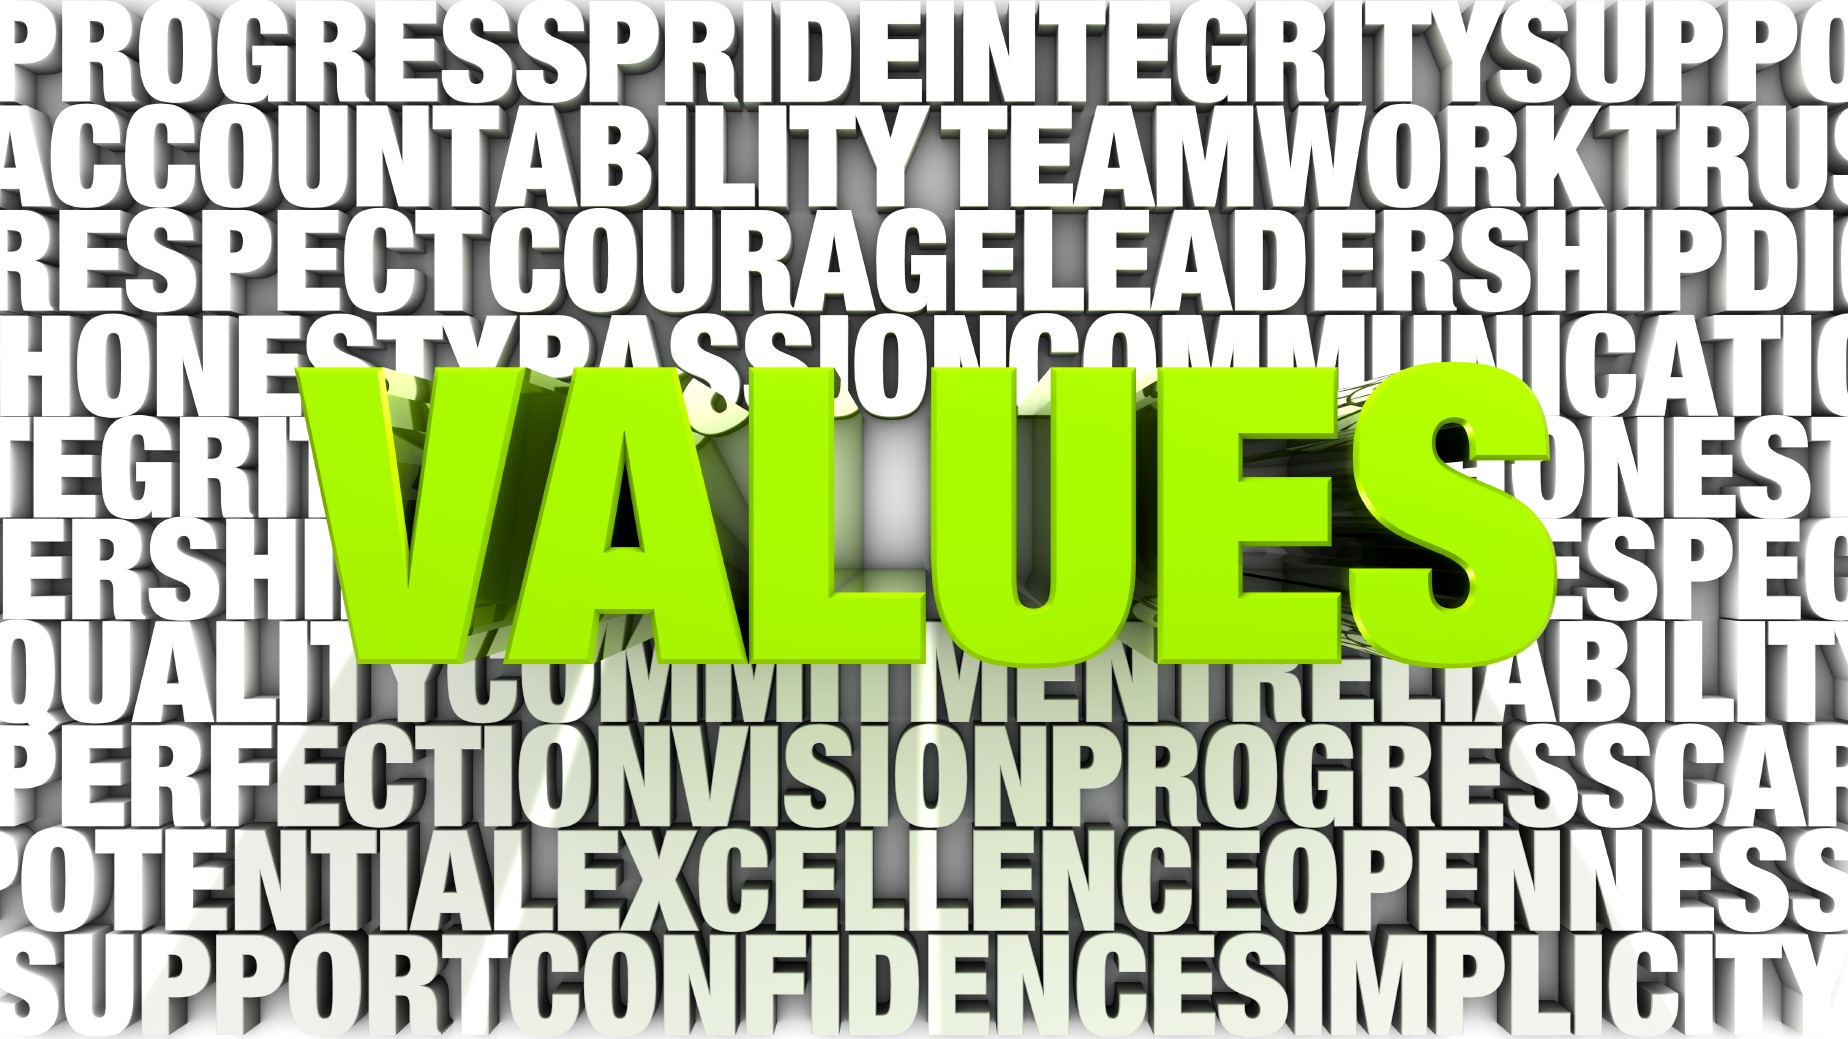 Foundation Settings For Your Personal Values